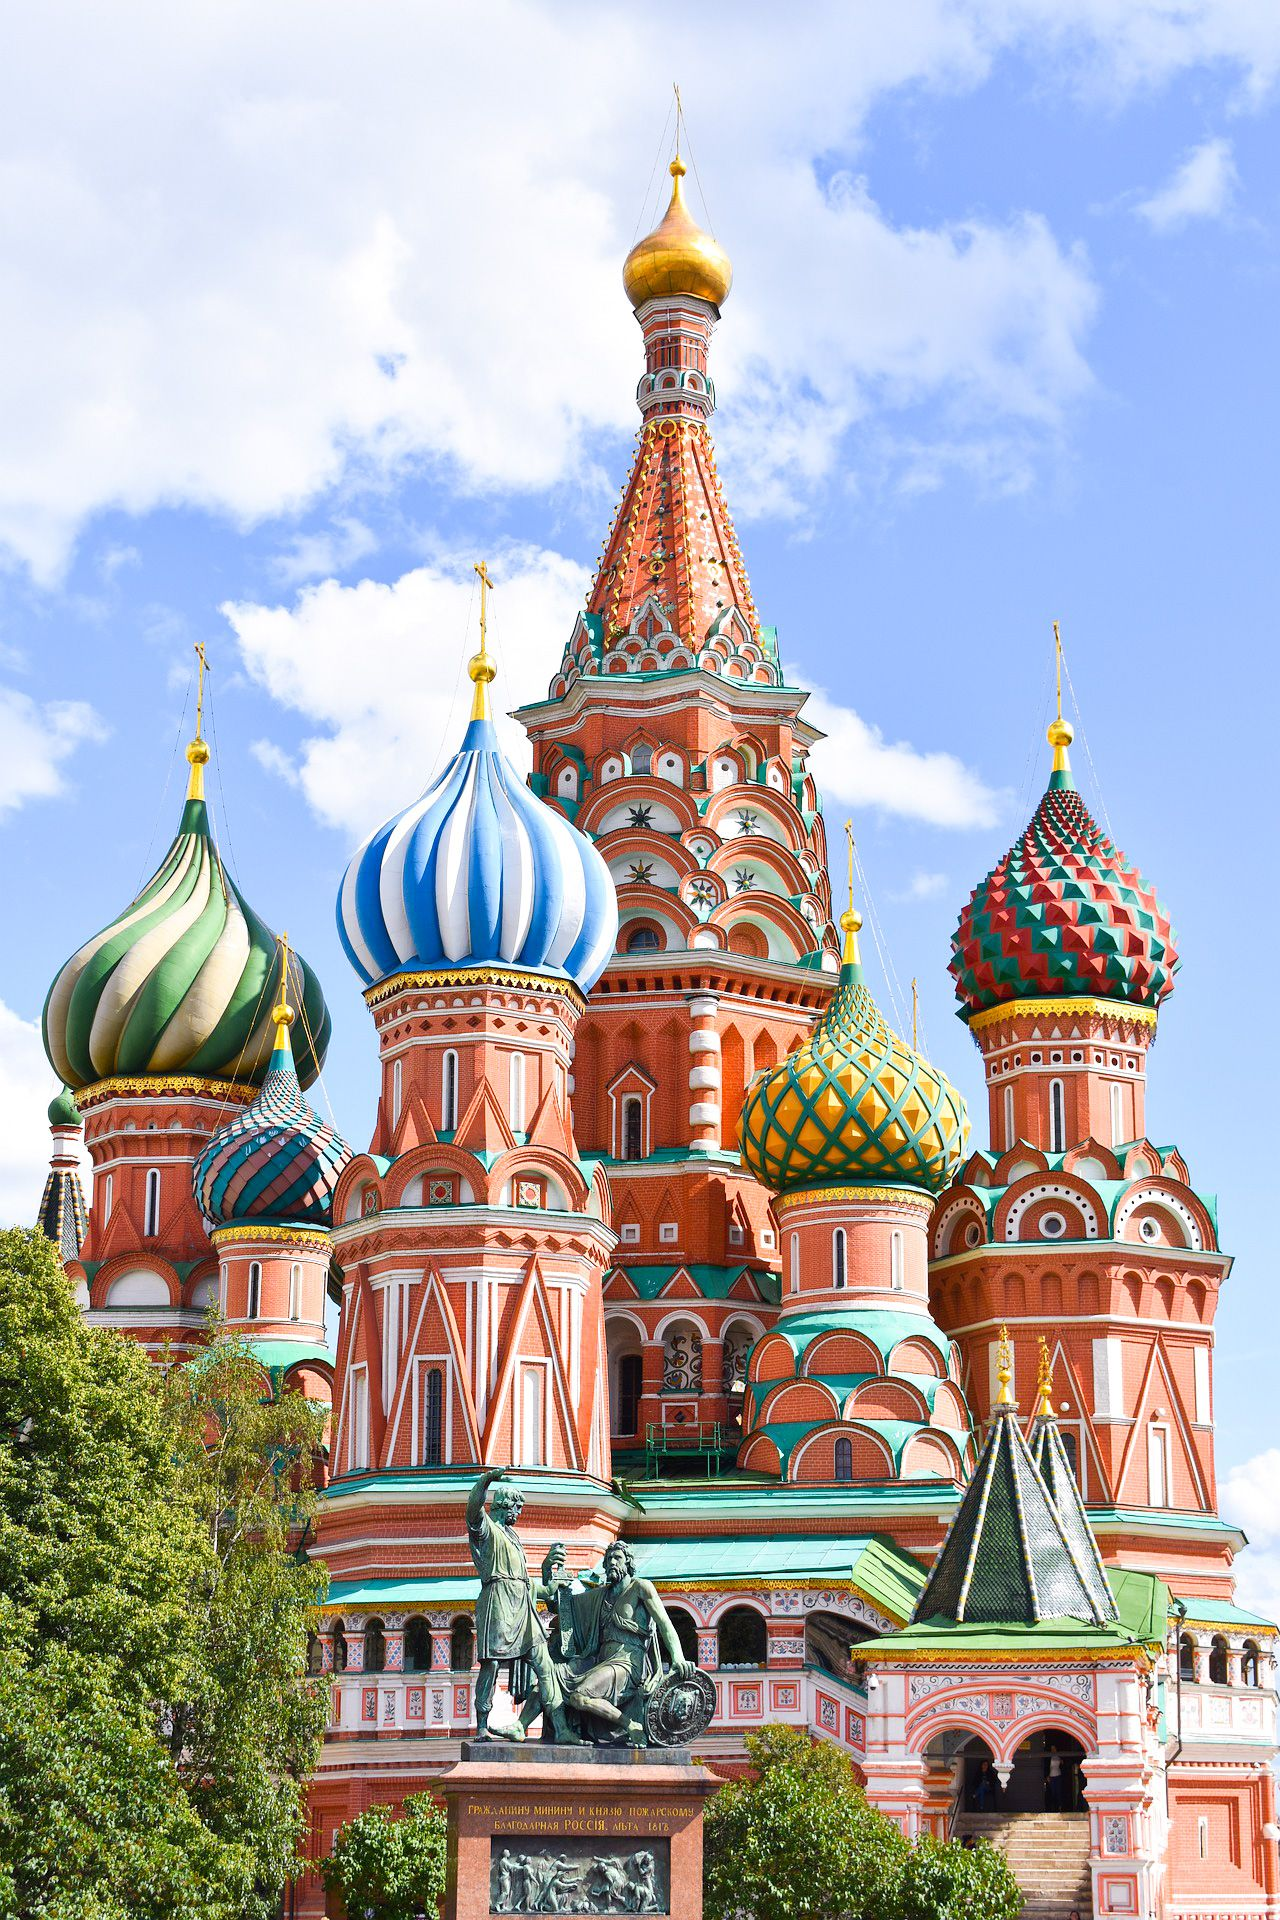 Colorful St. Basil's Cathedral is a must-see place in #Moscow #Russia Click the link to discover other beautiful places to visit in the capital of Russia #traveldestination #travelinspiration #travelrussia